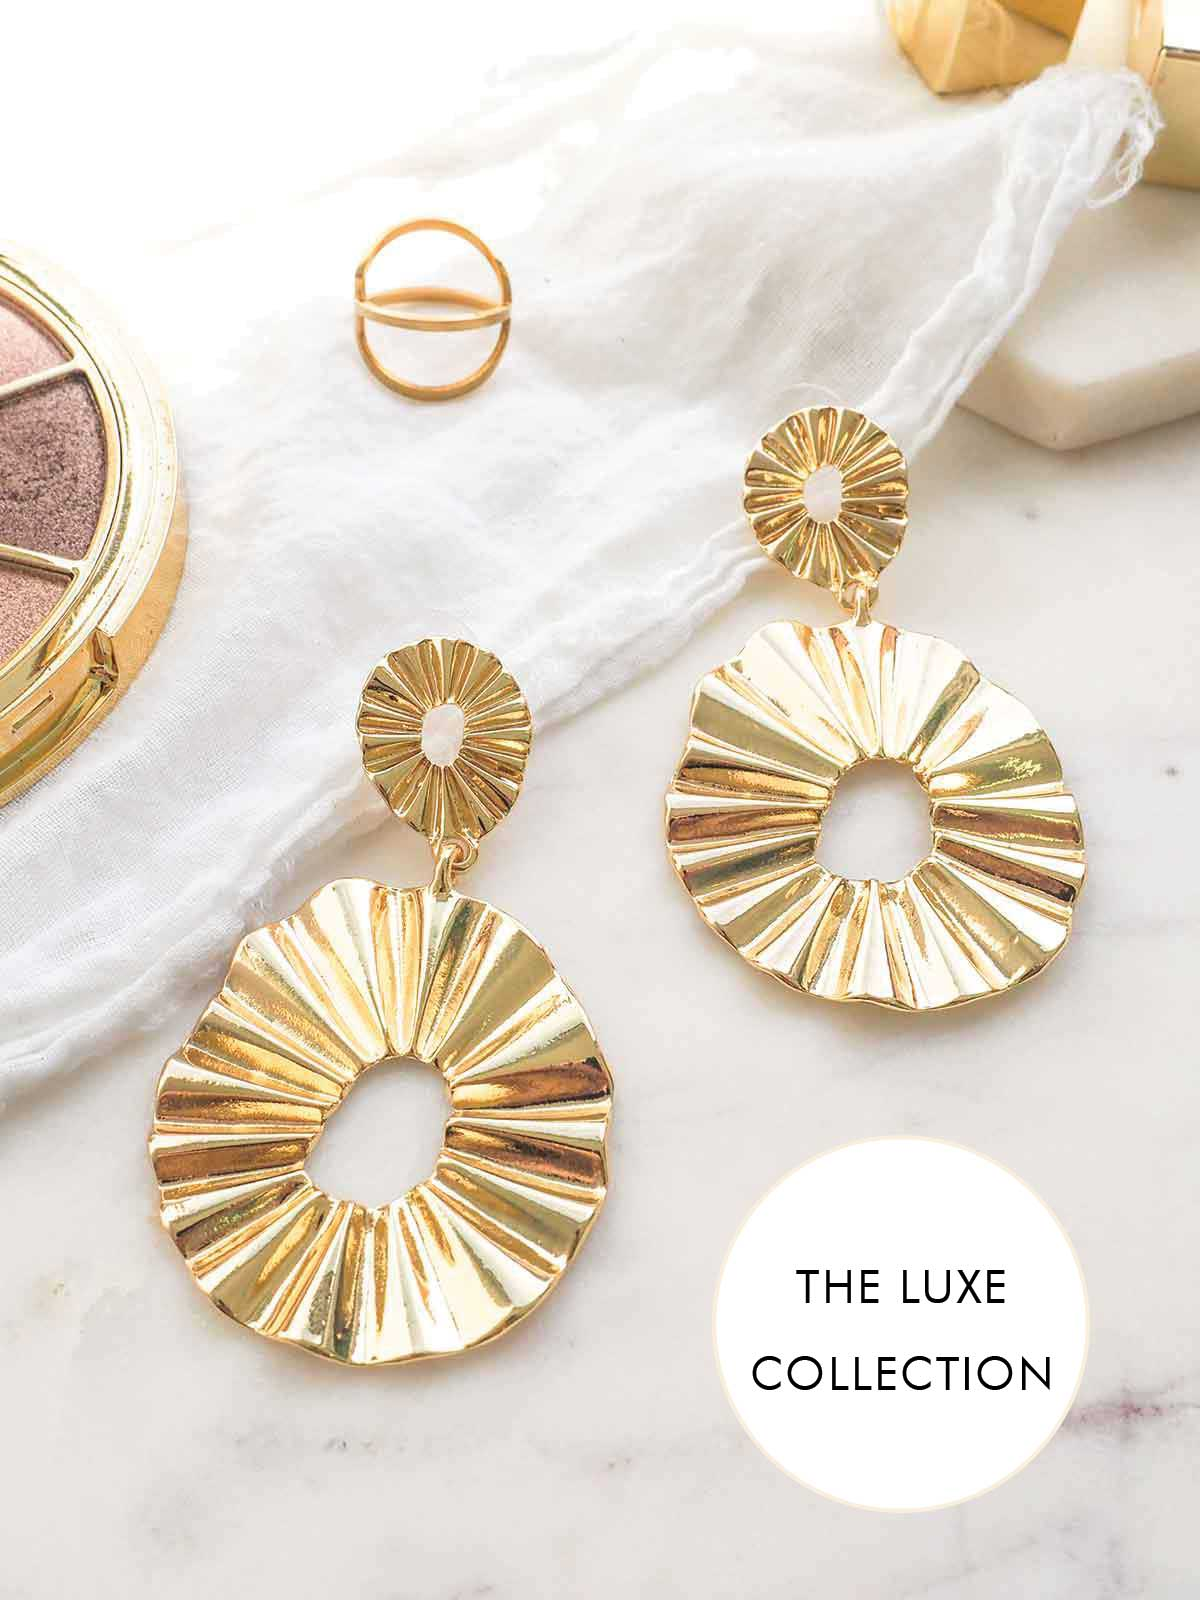 LOVE FORMATION GOLD STATEMENT EARRINGS